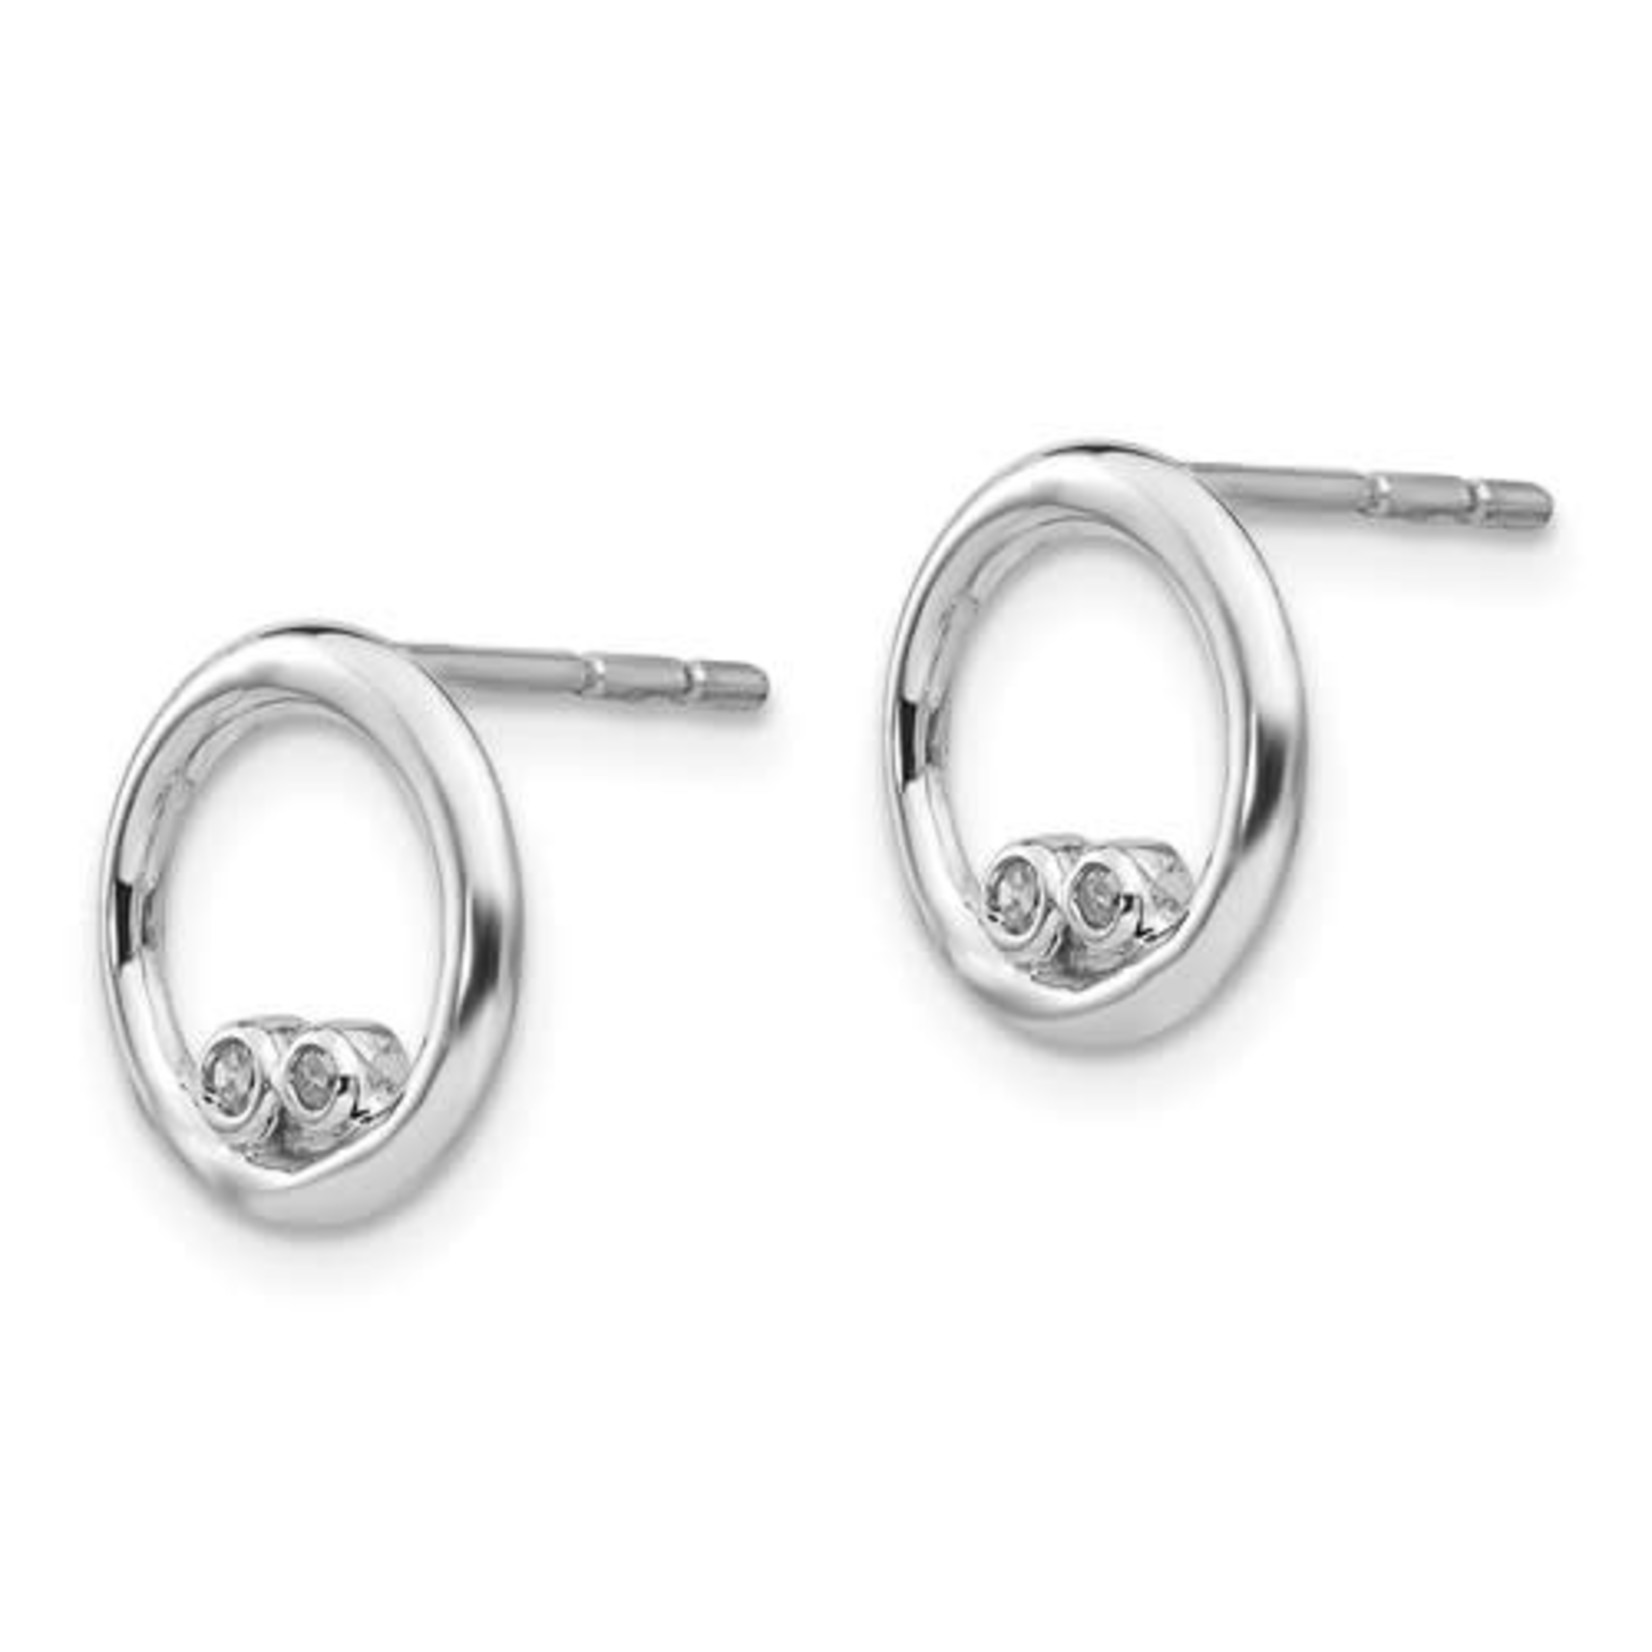 This Is Life Double Double Diamond Earrings - Sterling Silver